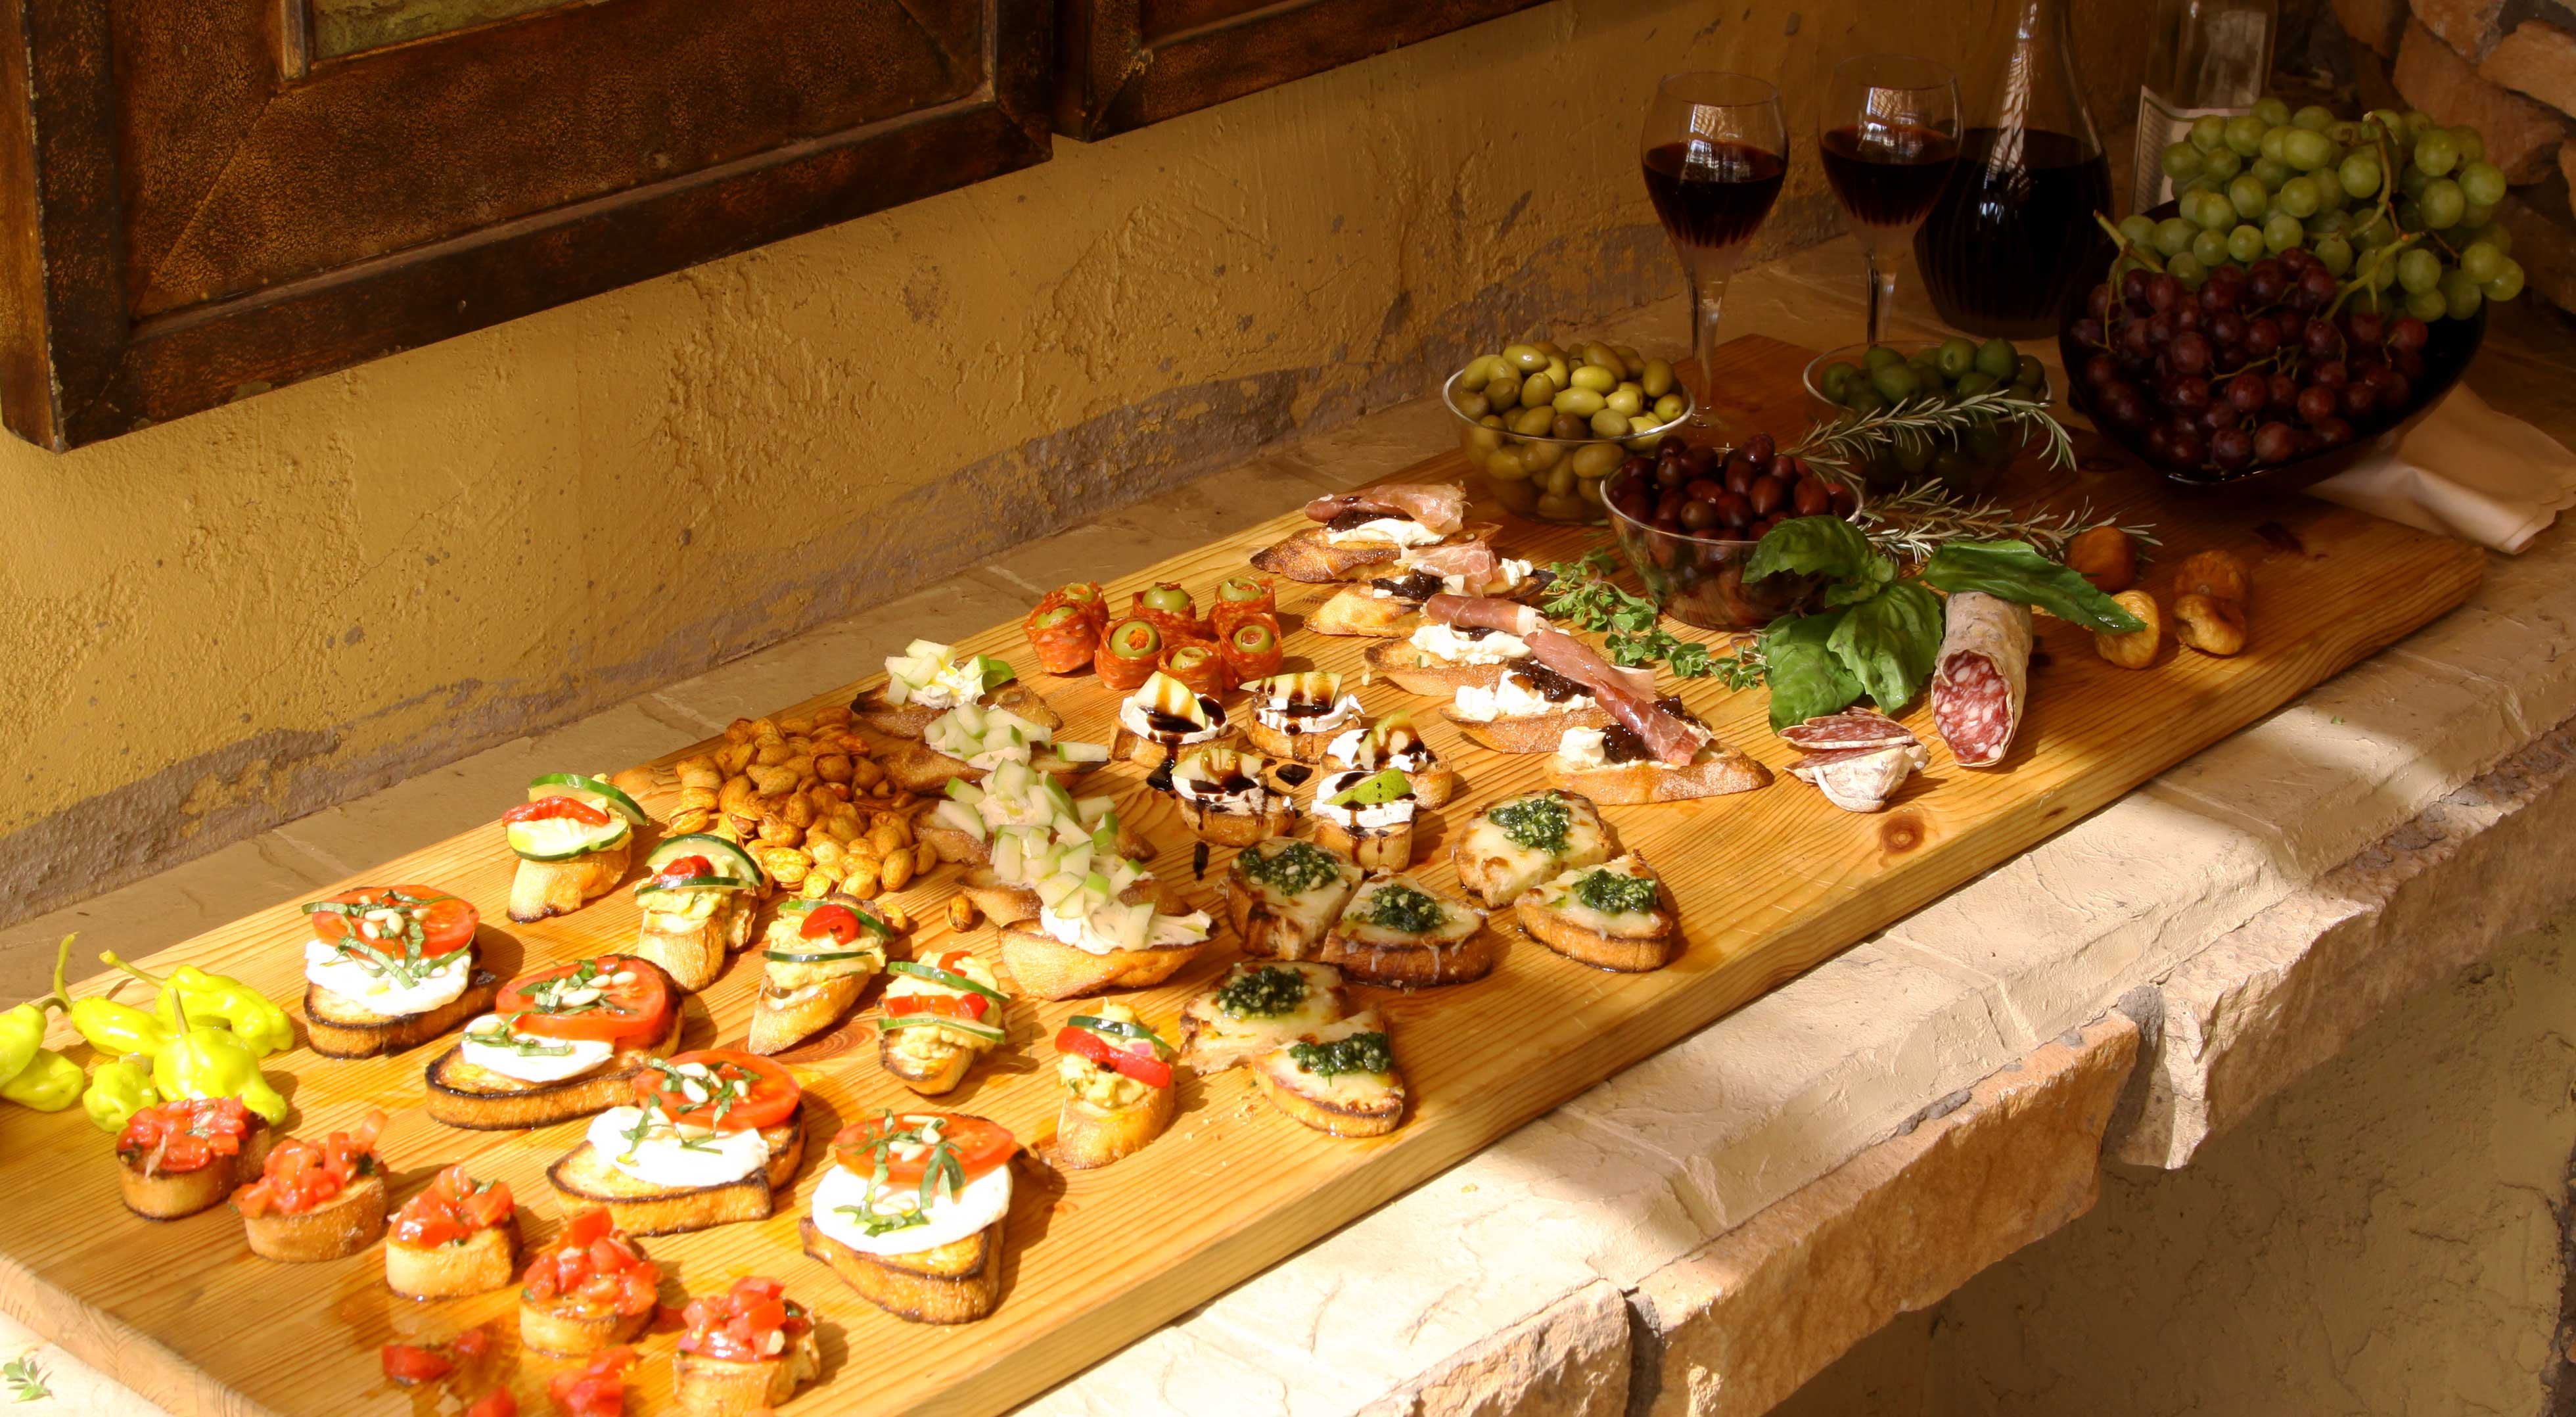 6 BRUSCHETTA IDEAS FOR YOUR NEXT PARTY